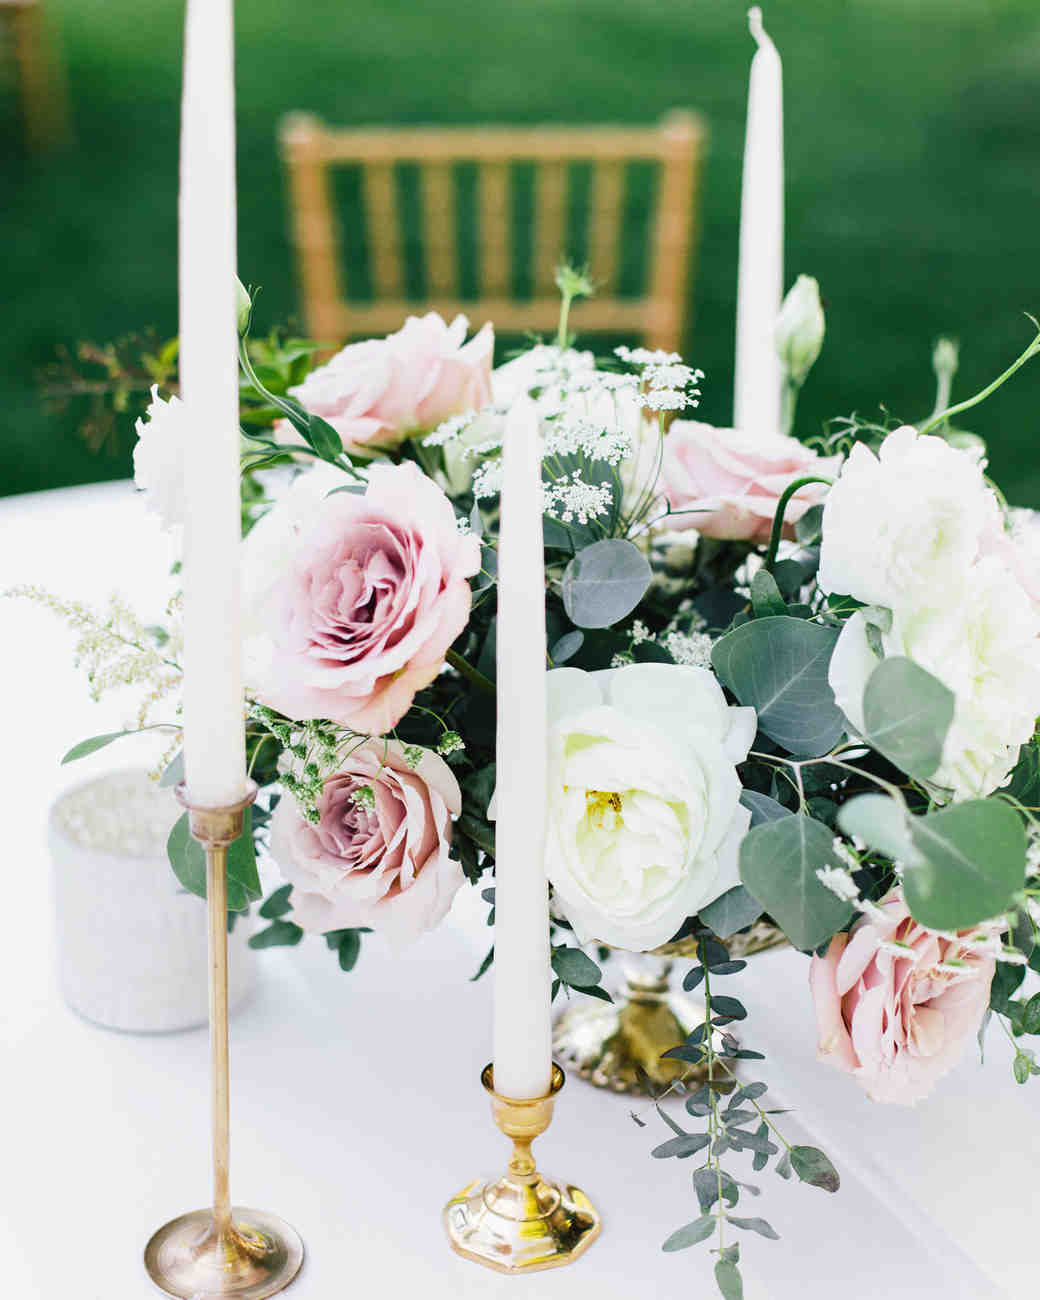 Flowers For Wedding Table Centerpieces: 50 Wedding Centerpiece Ideas We Love